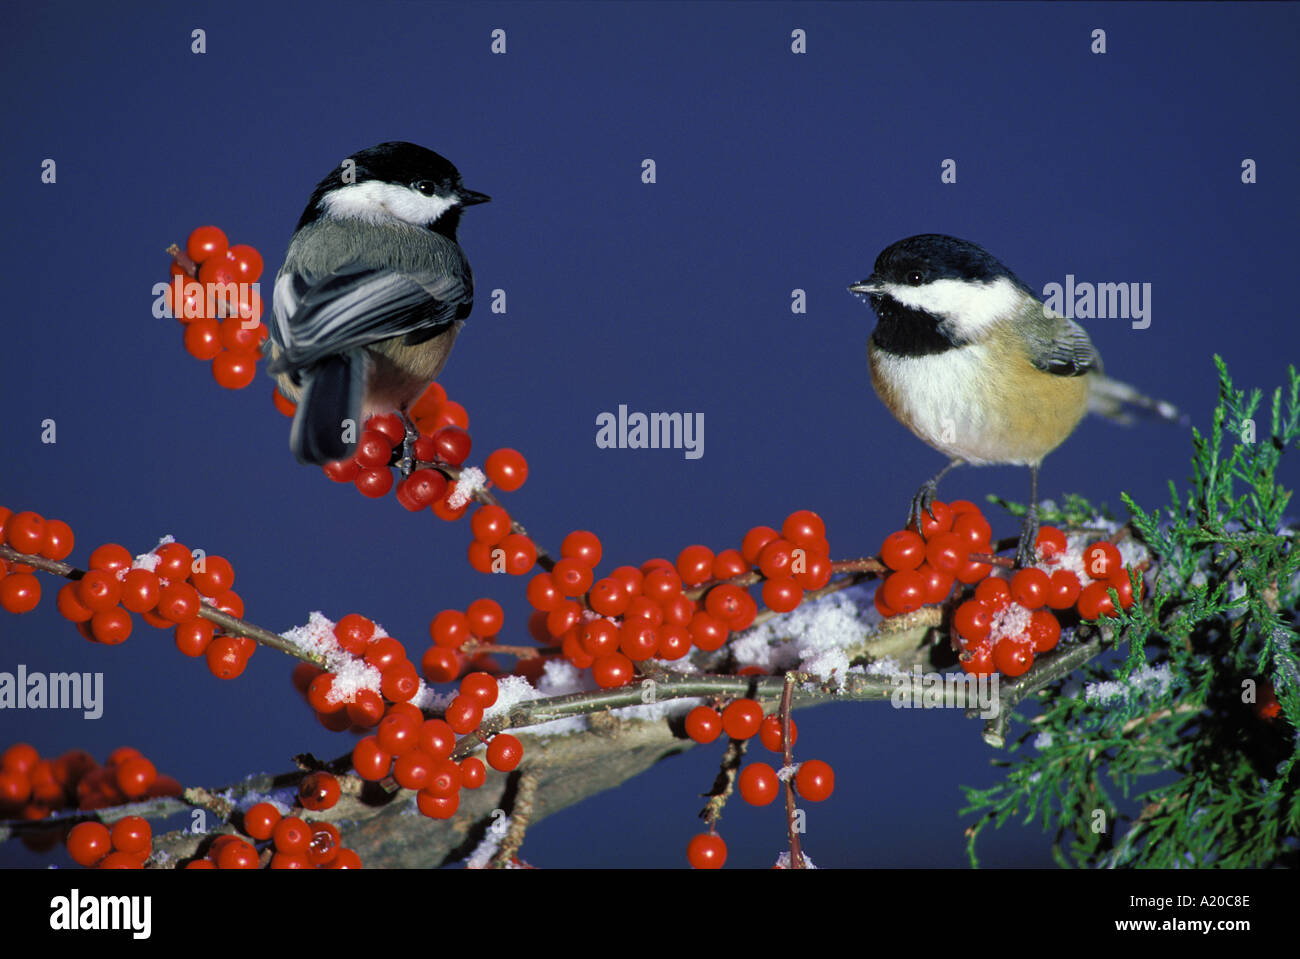 Two Black-capped Chickadees on holly branch with snow, Missouri United States America - Stock Image